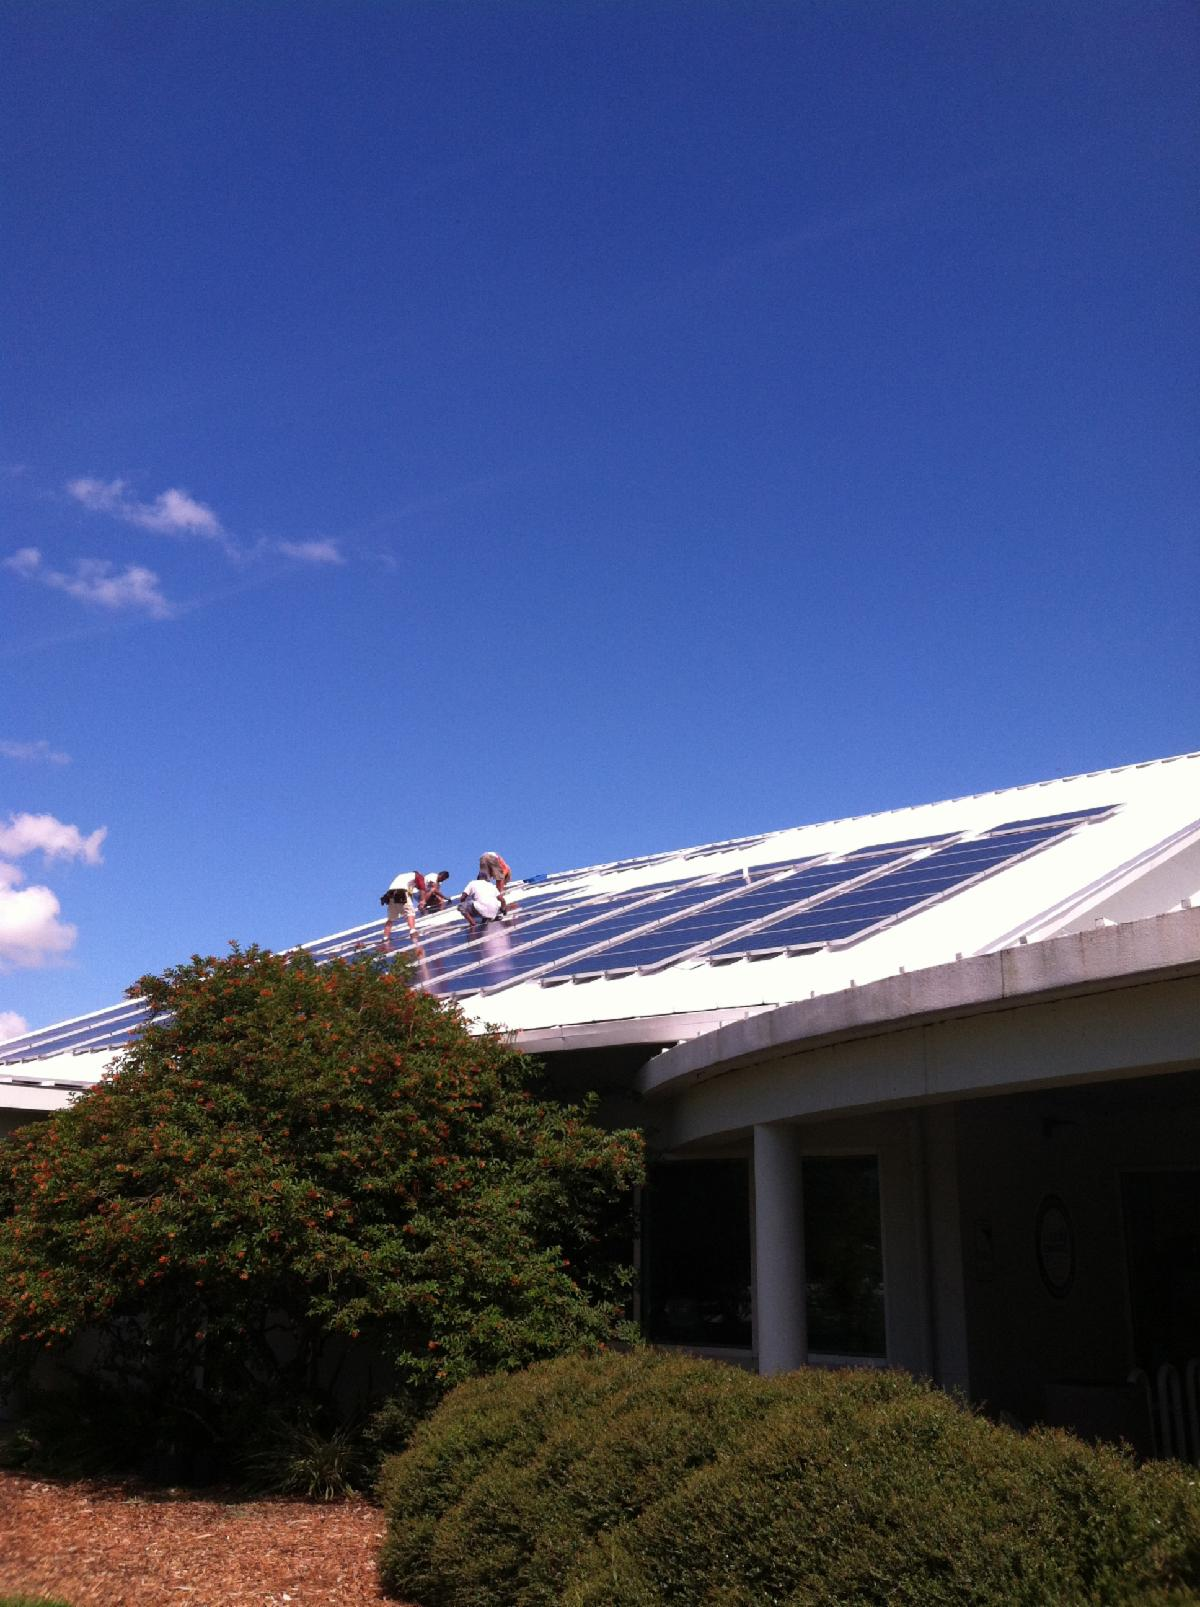 solar panel installation at extension office in twin lakes park